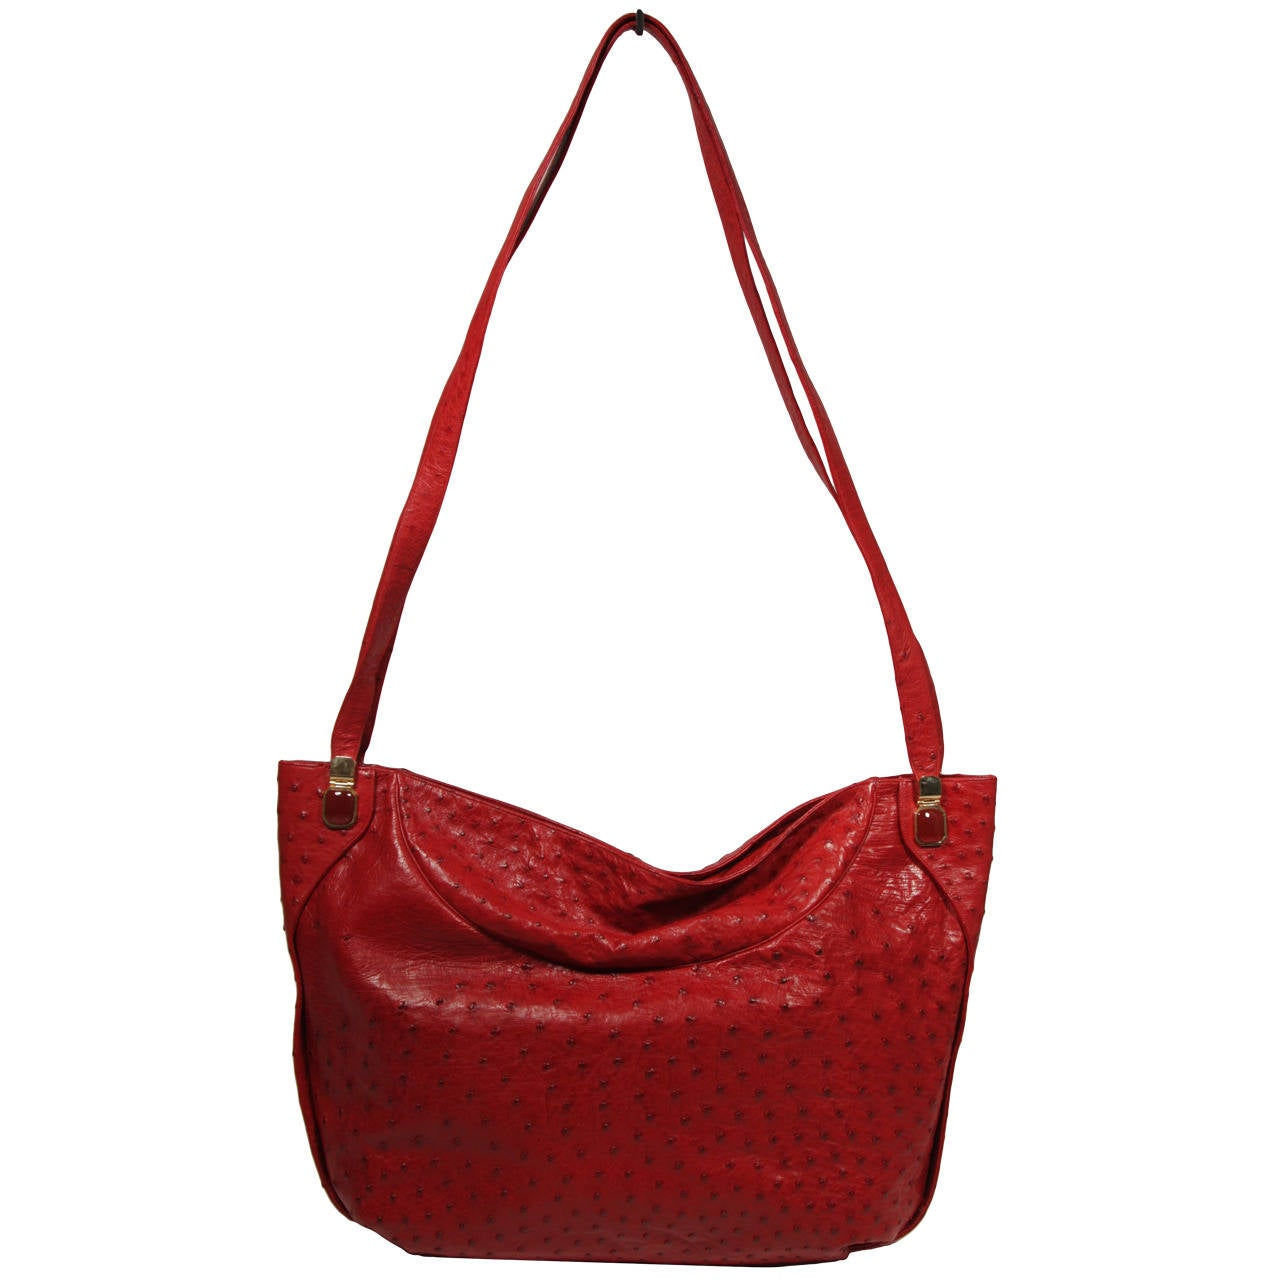 Judith Leiber Extra Large Red Ostrich Purse 1